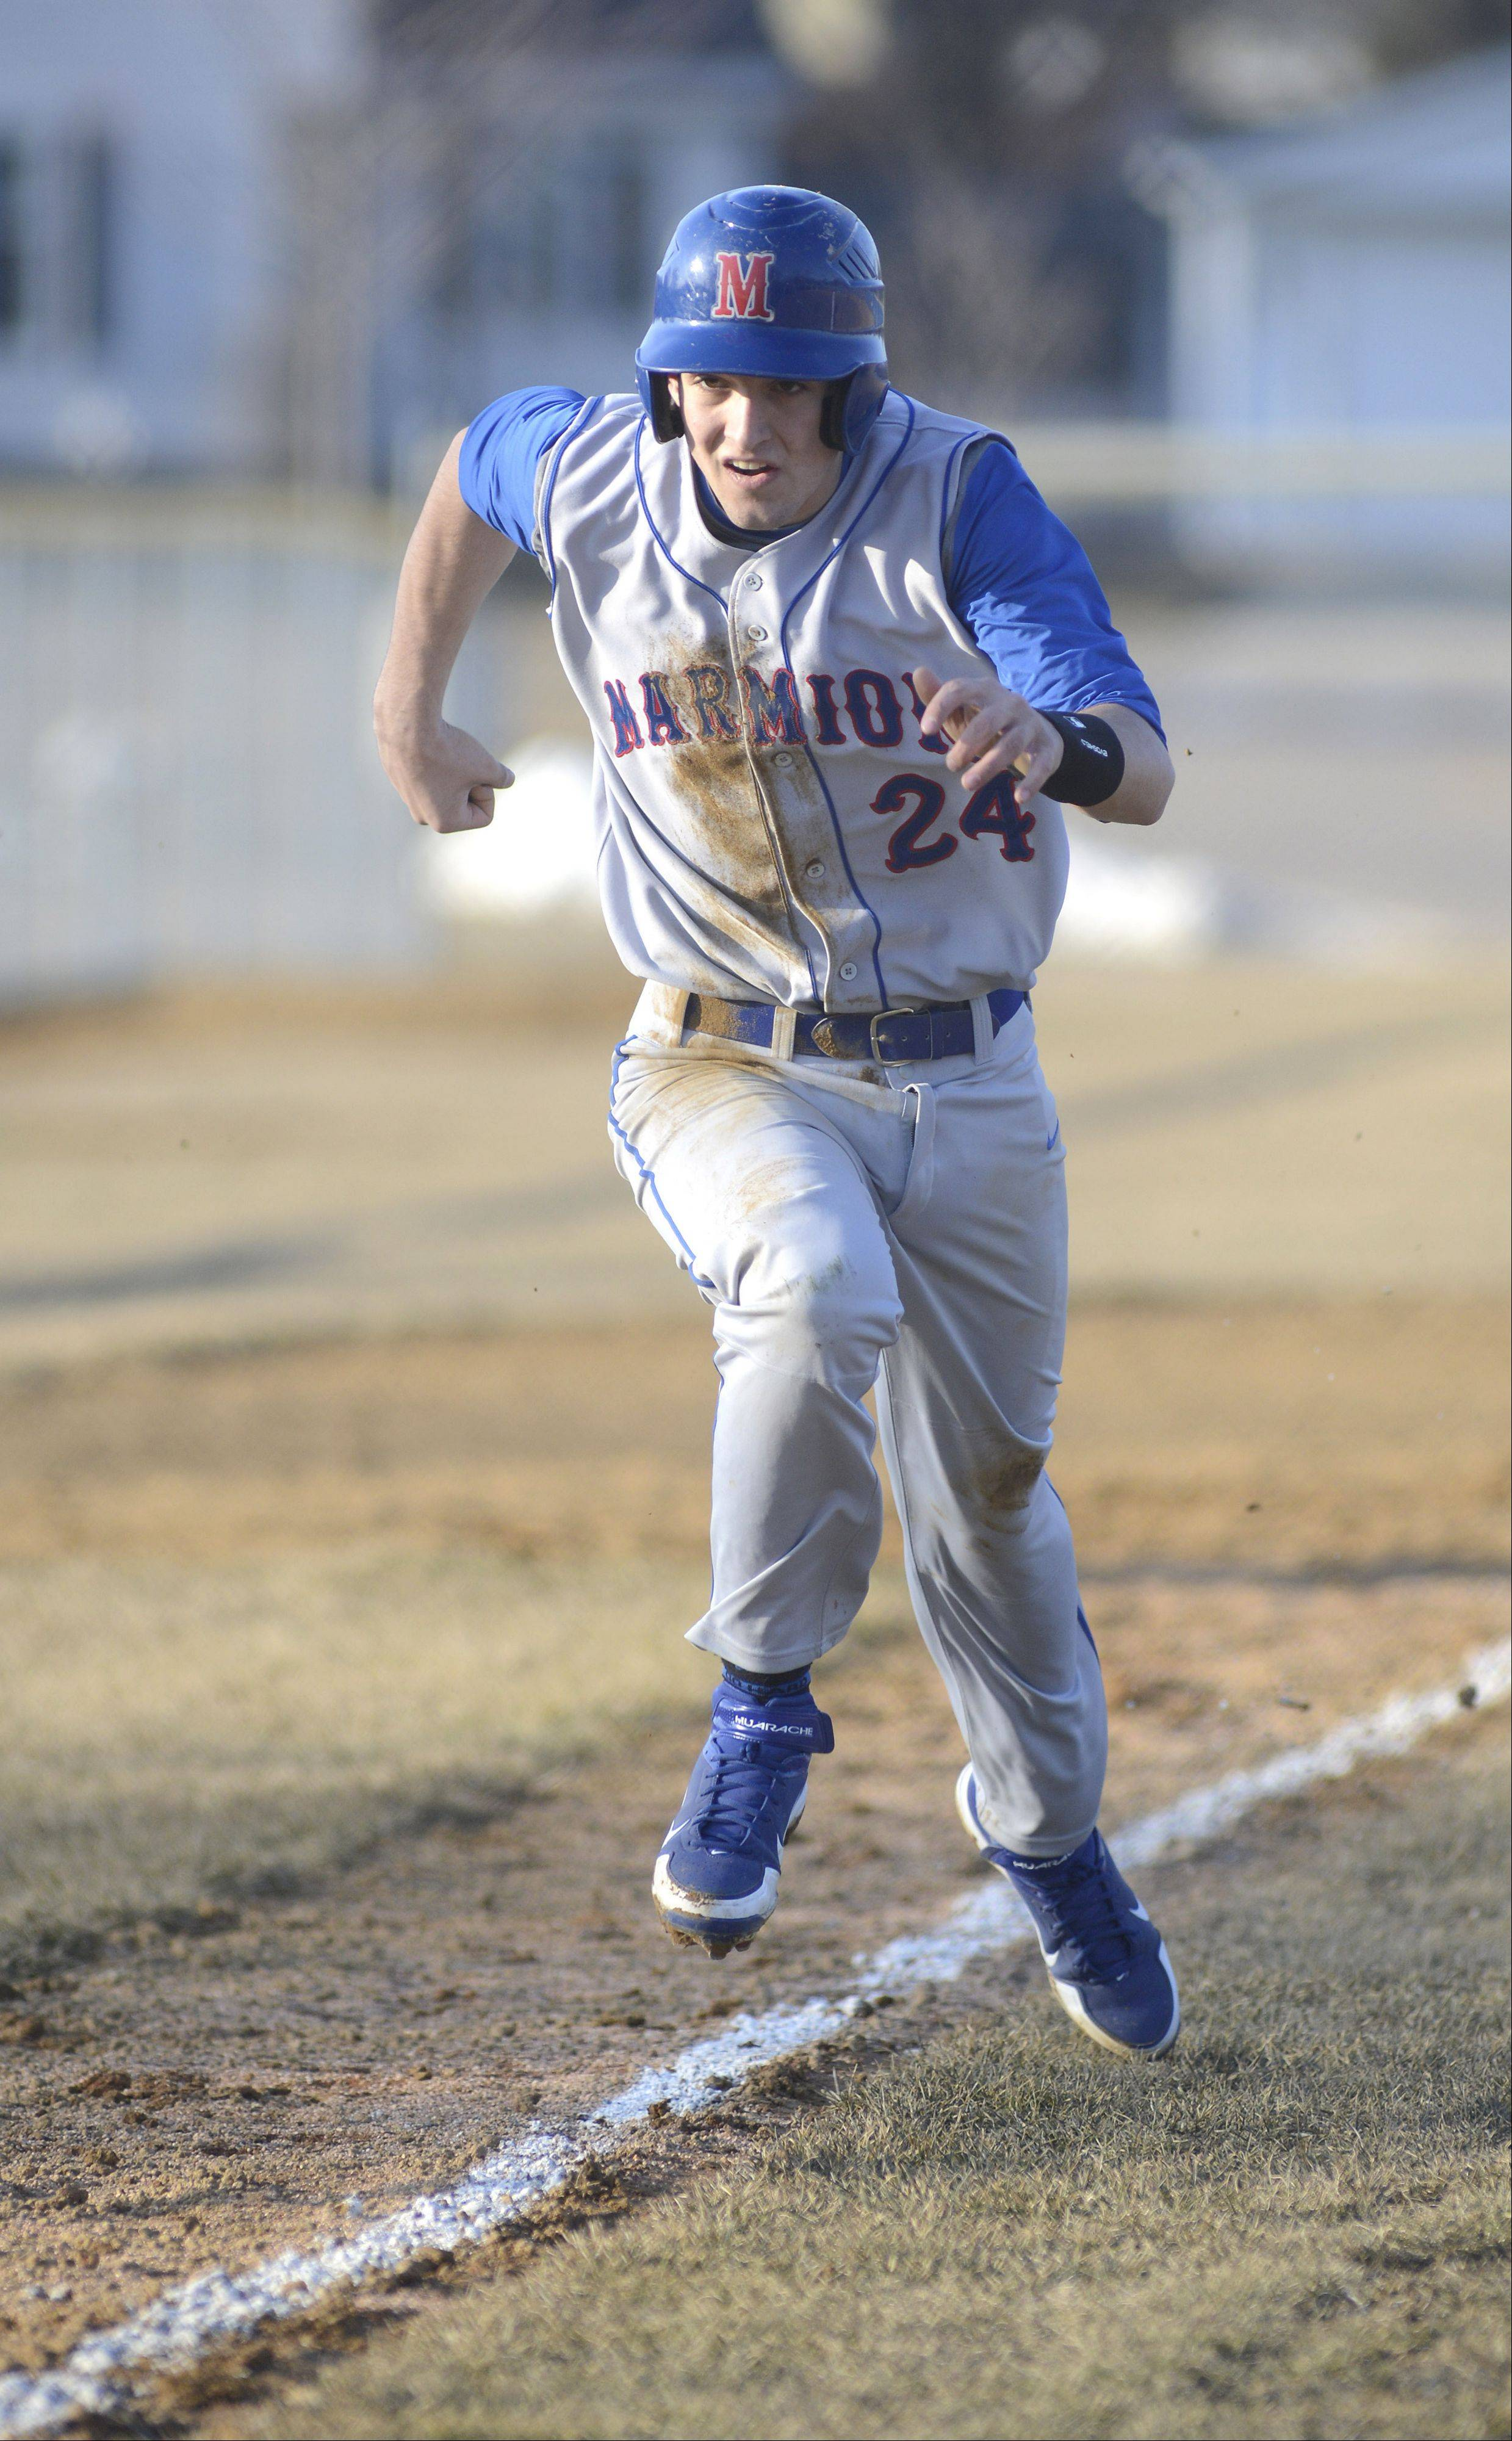 Marmion's Corey Friel bolts for home base to score a run in the seventh inning on Thursday, March 28.